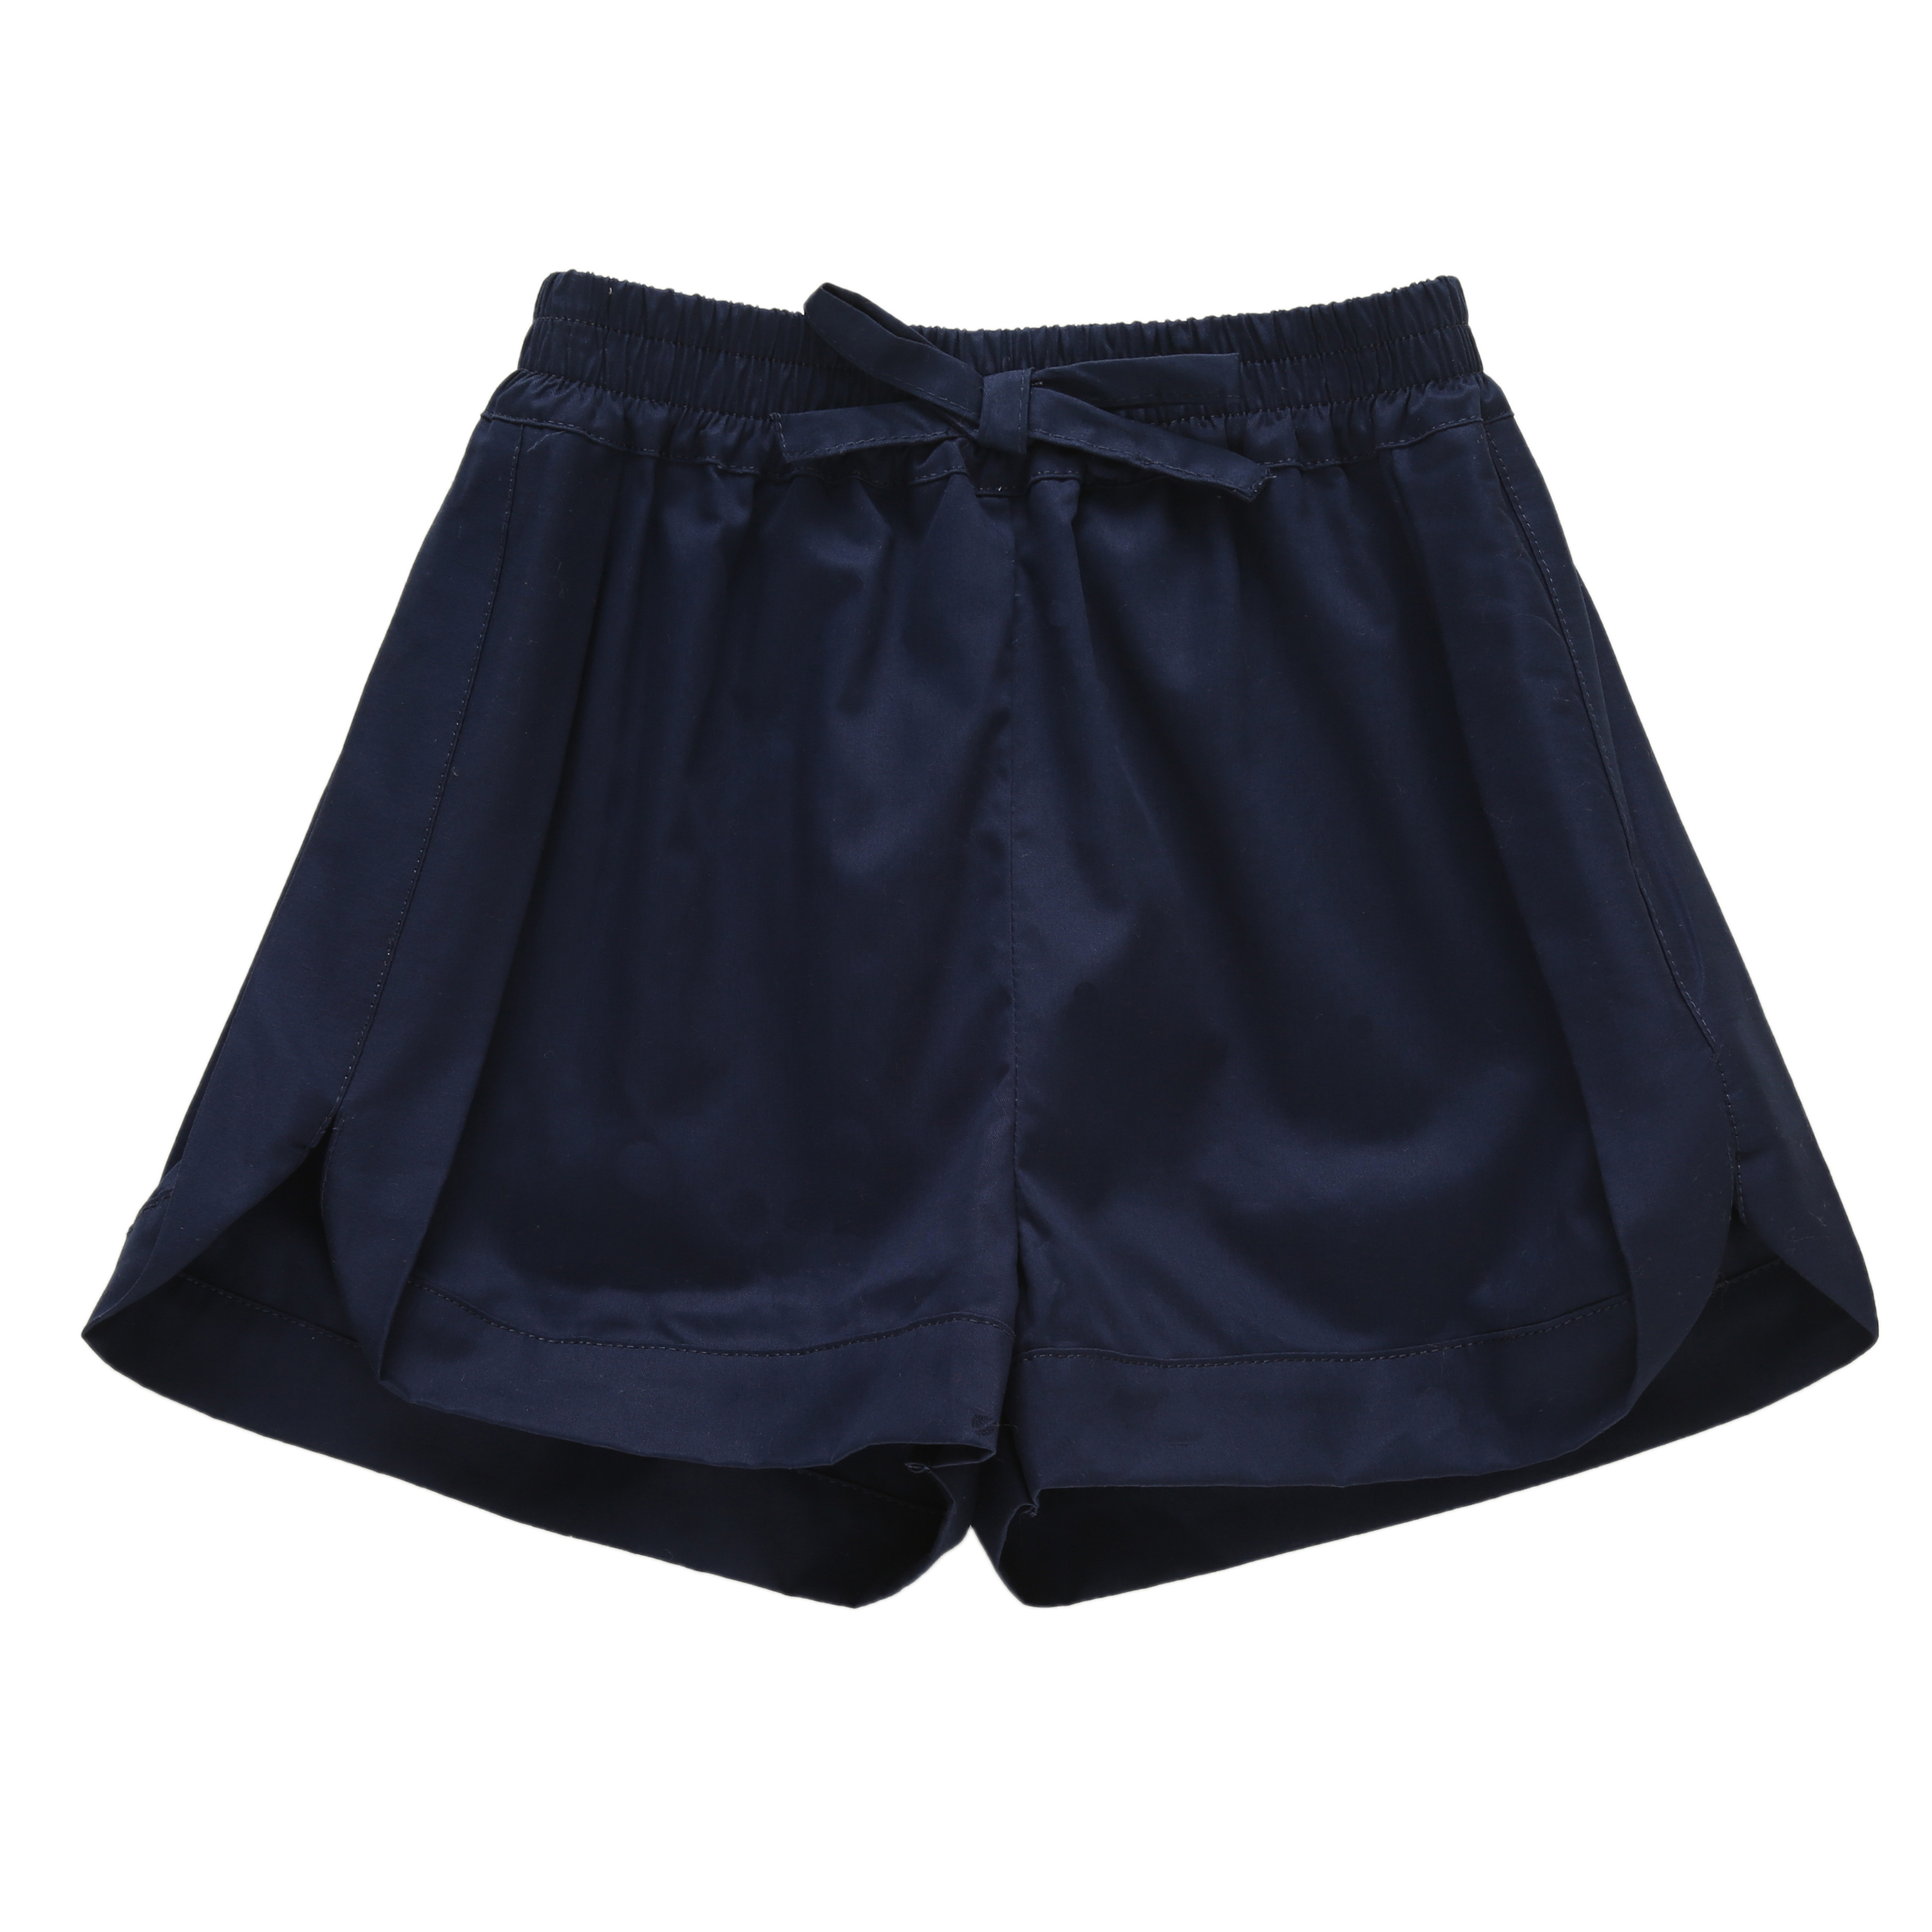 Richie House Girls' Summer shorts with Bow RH2288